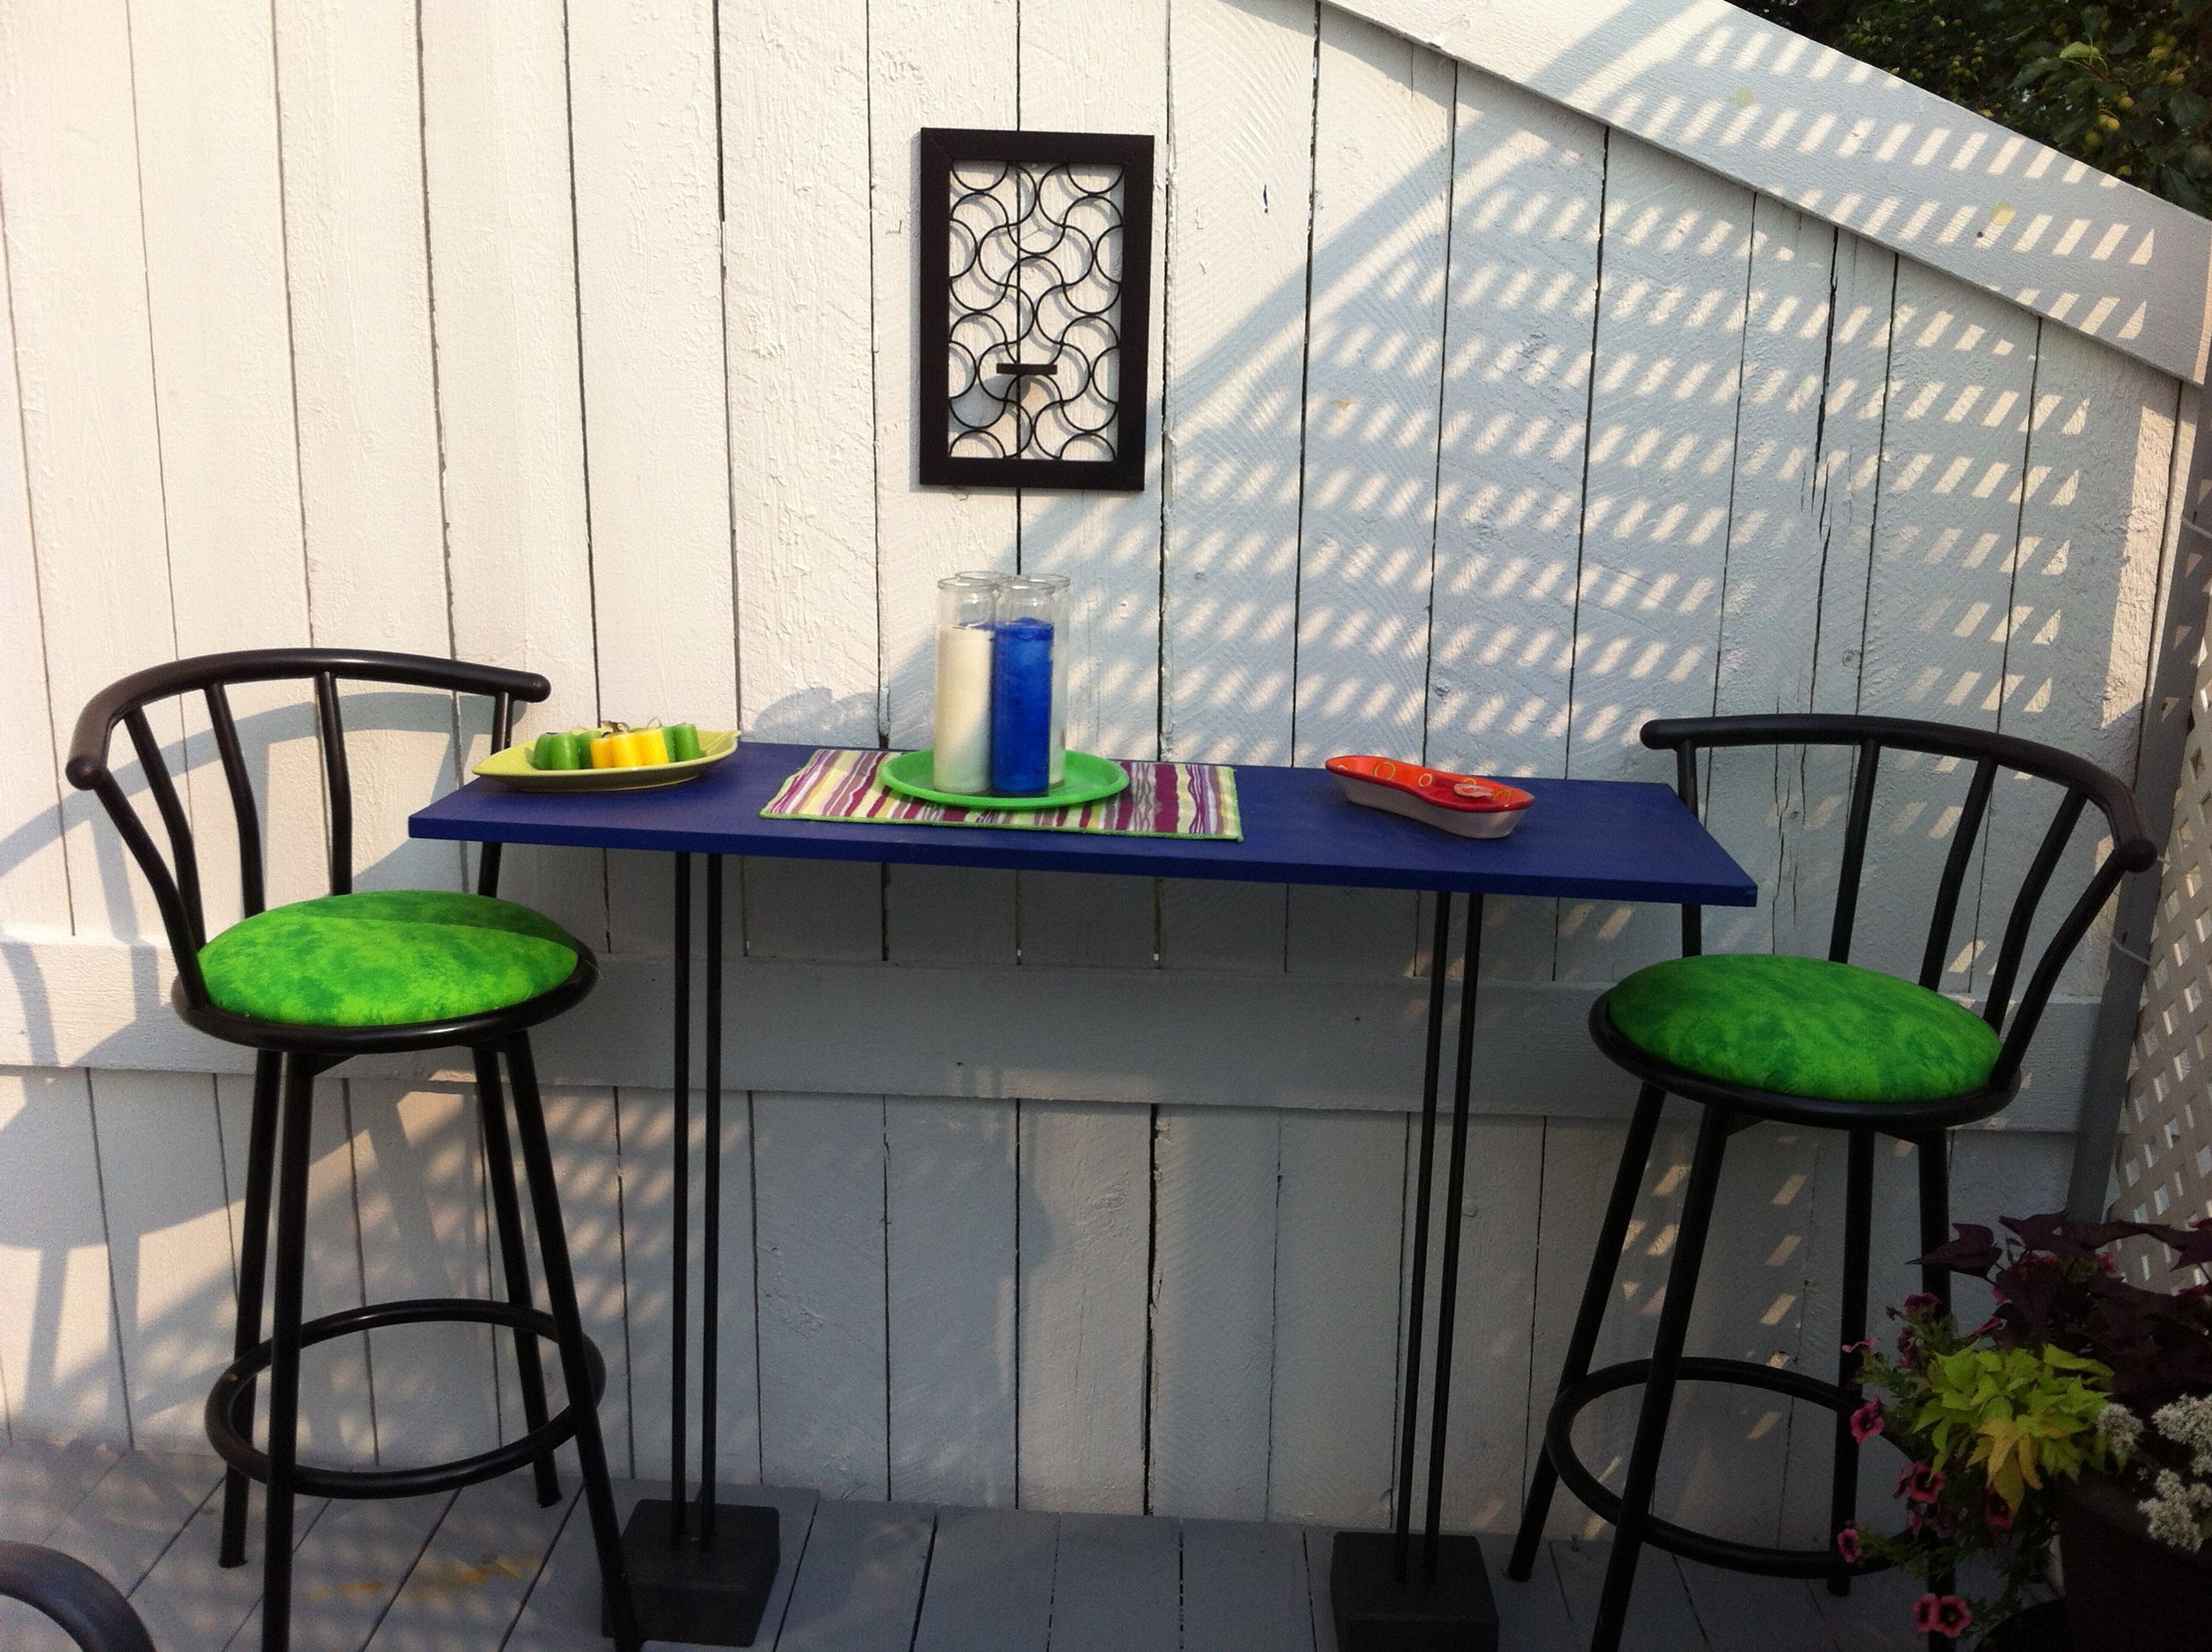 Repurposed Speaker Stands Into Patio Table/Bar From Blog 8 DIY Patio Accents